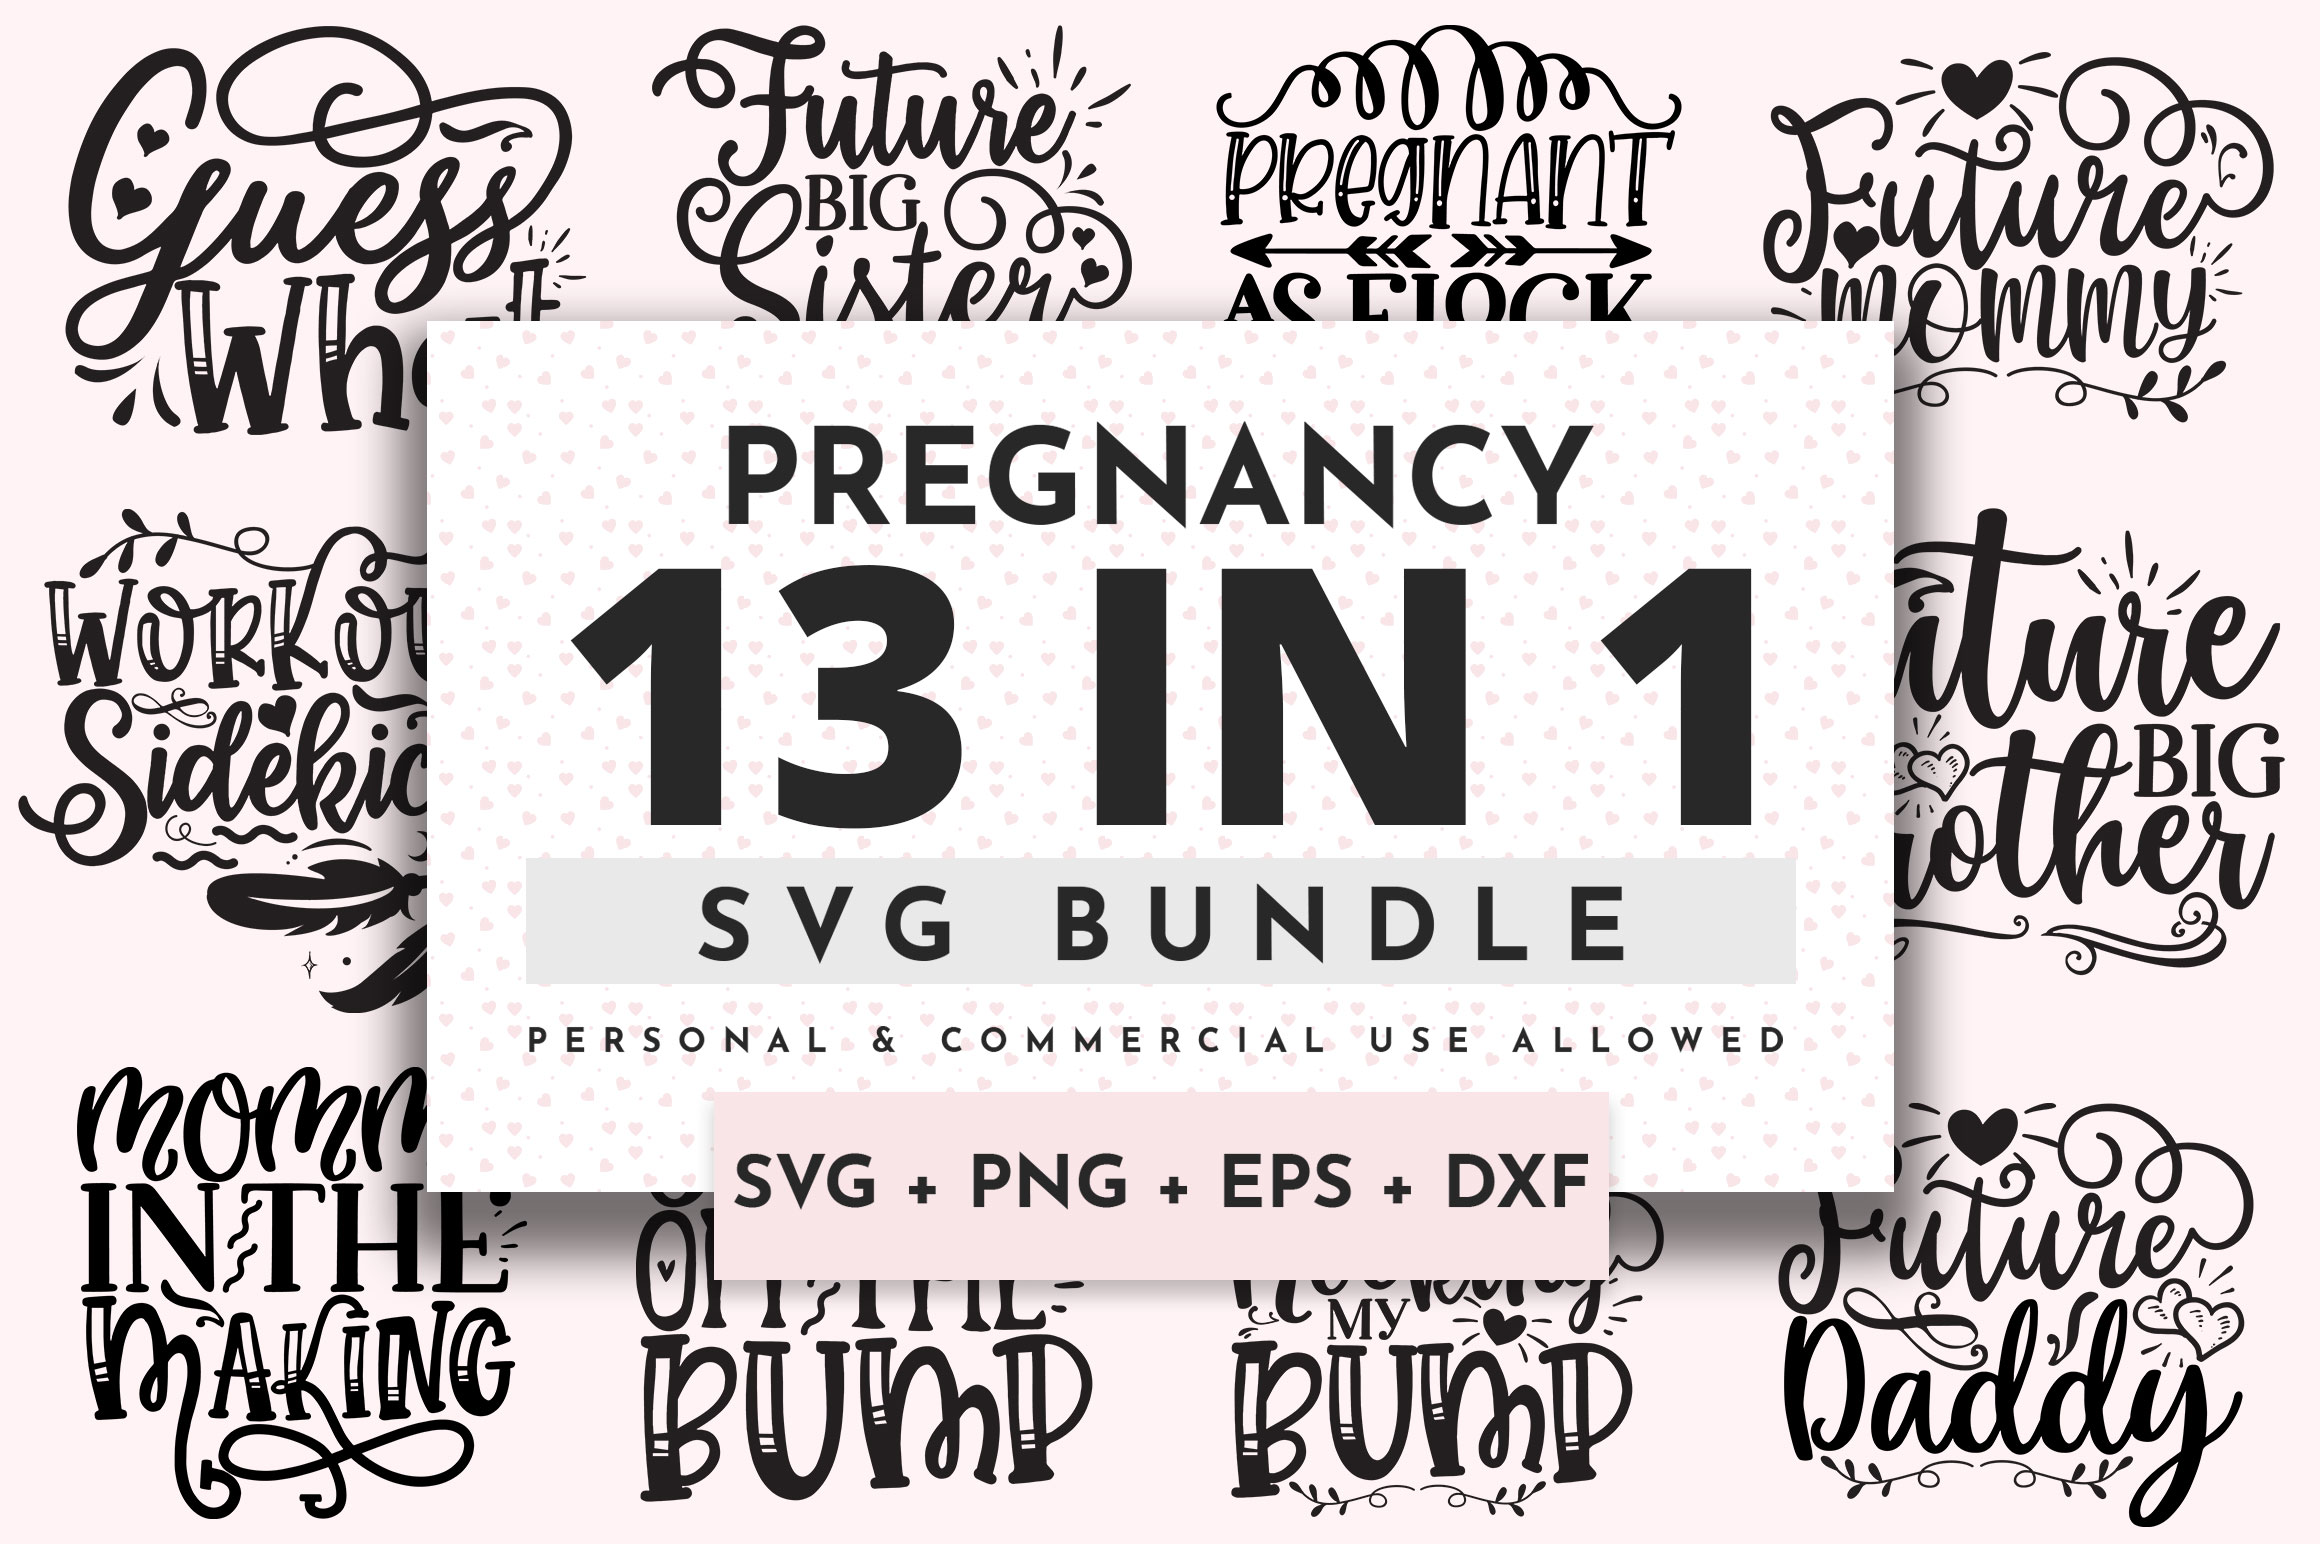 Download Free Pregnancy Bundle Graphic By Orindesign Creative Fabrica for Cricut Explore, Silhouette and other cutting machines.